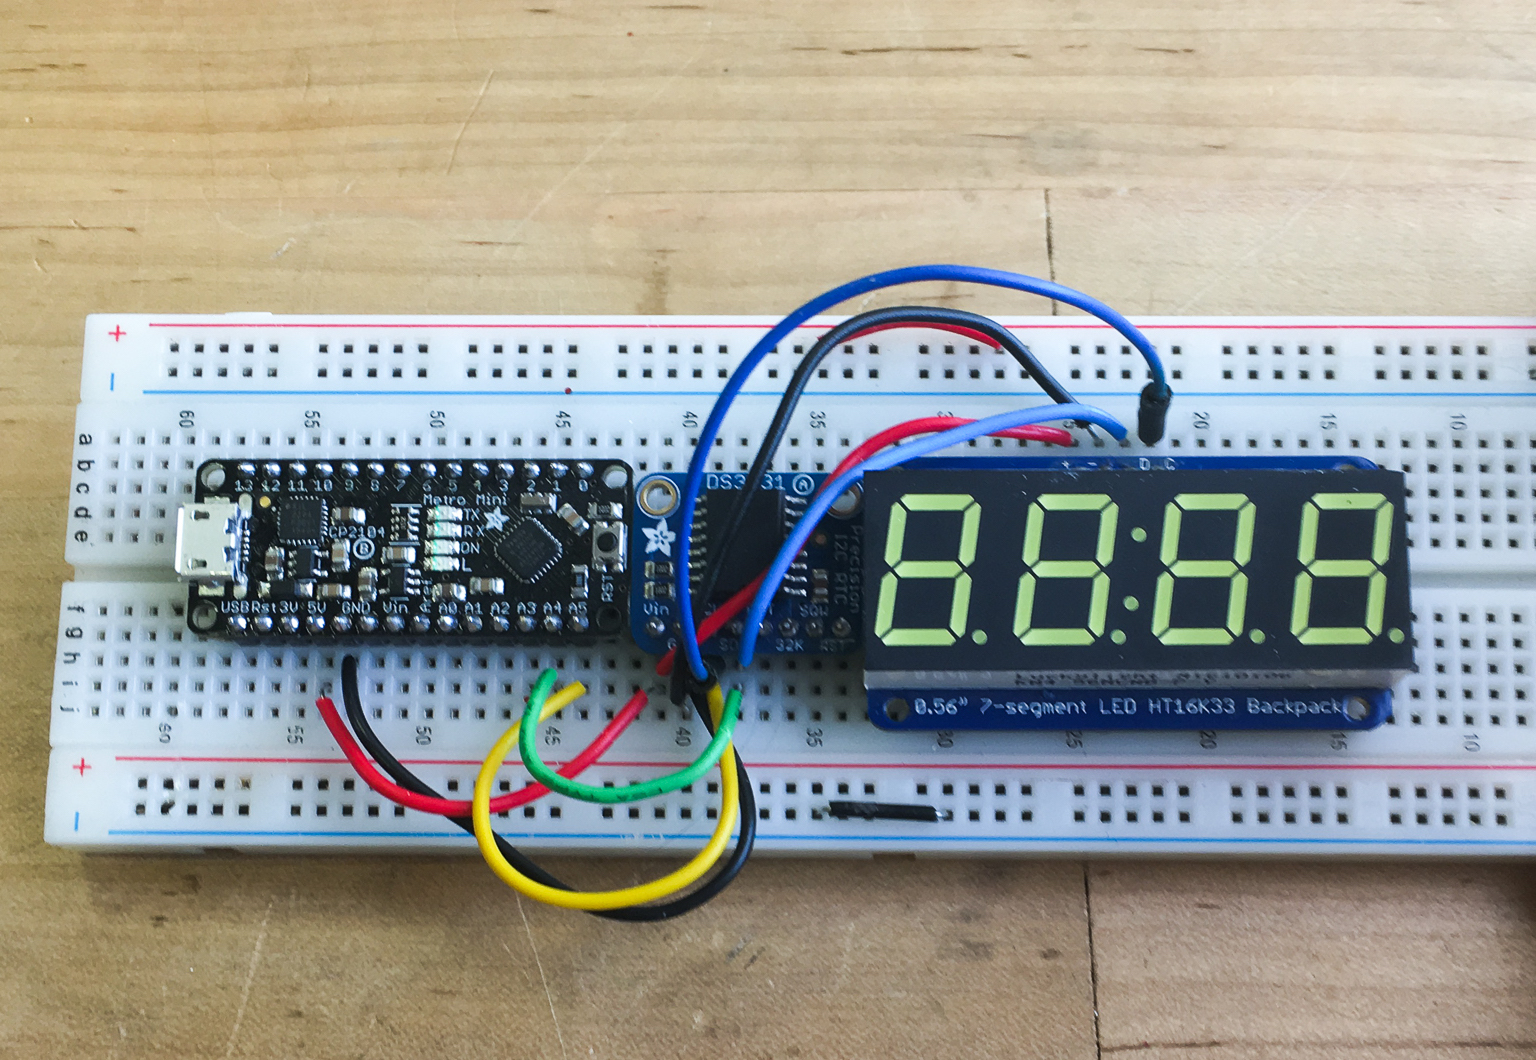 adafruit_products_IMG_2559_2k.jpg